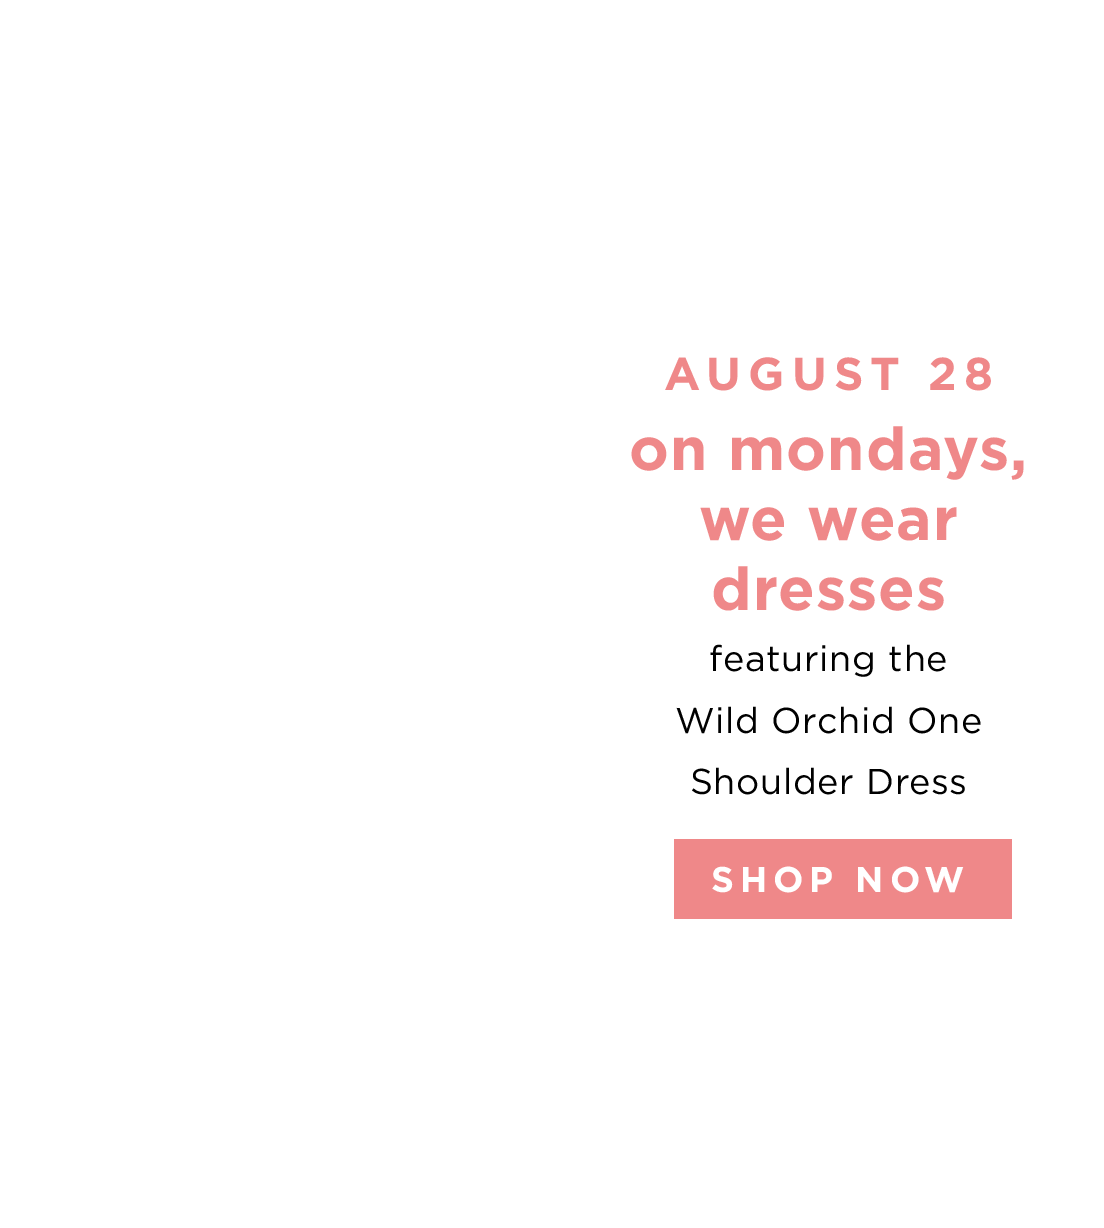 AUGUST 28 - SHOP NOW